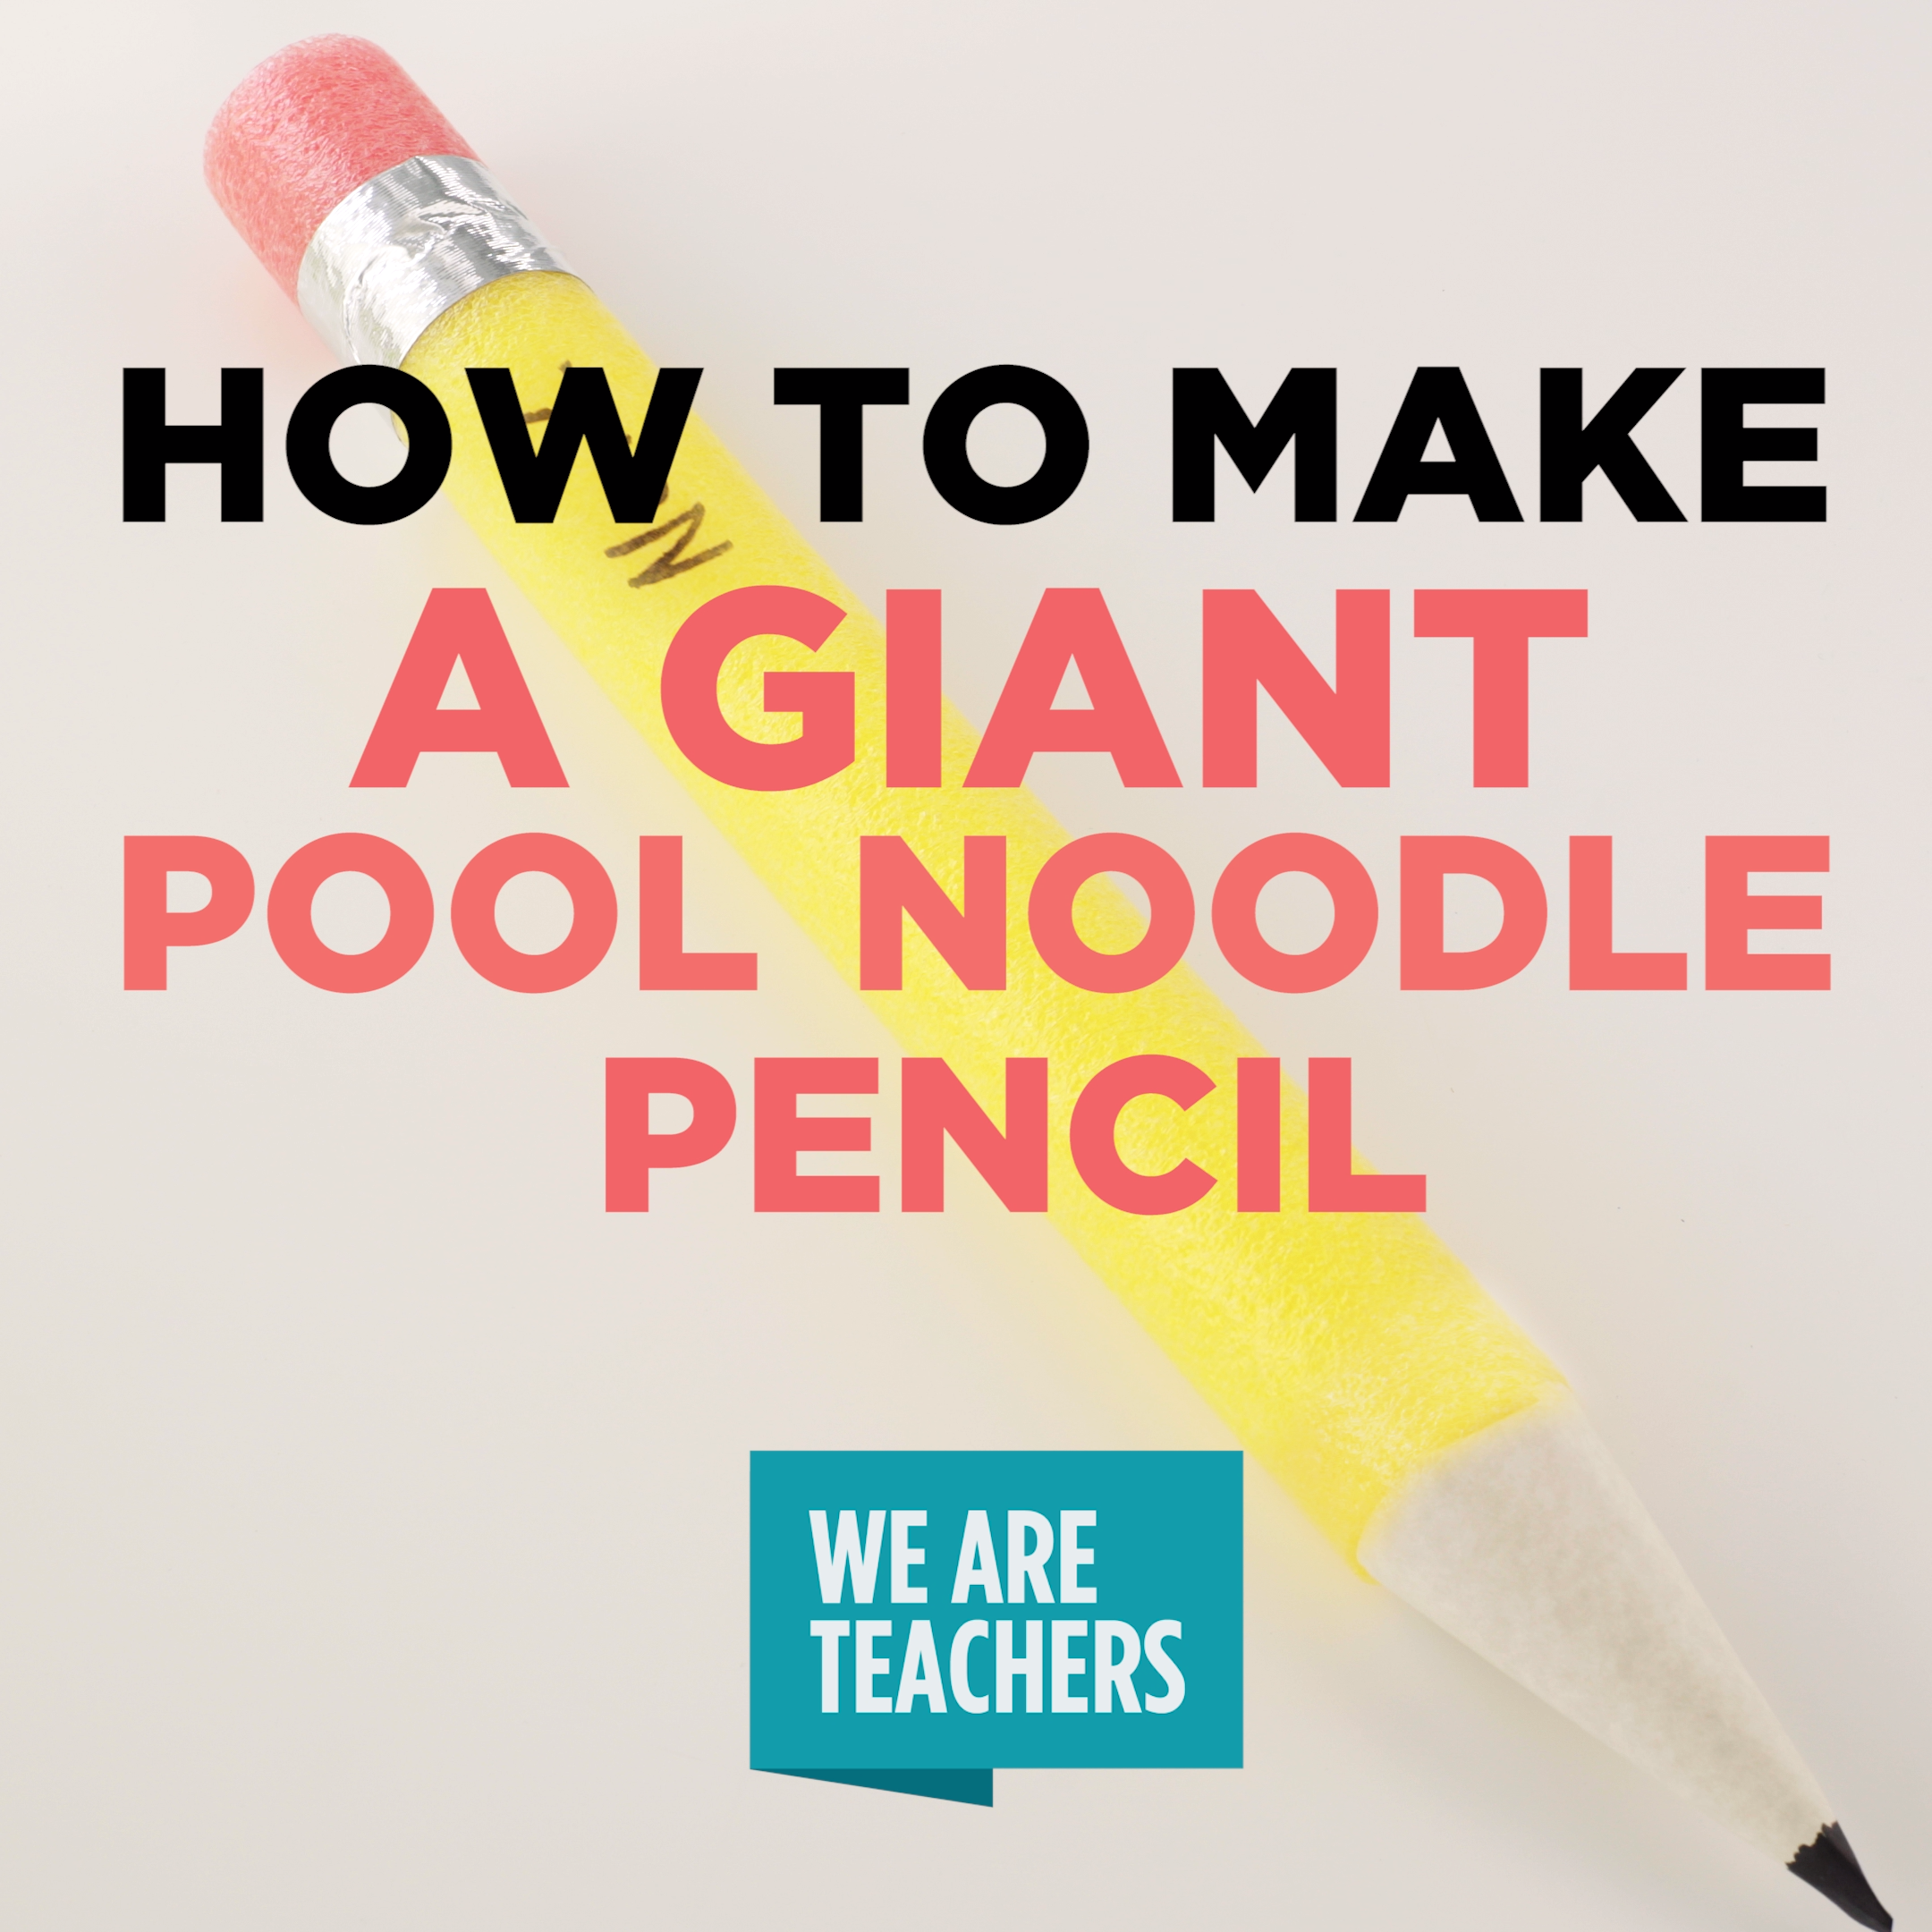 Make Giant Pool Noodle Pencils for Less Than $5 - #GIANT #Noodle #Pencils #Pool